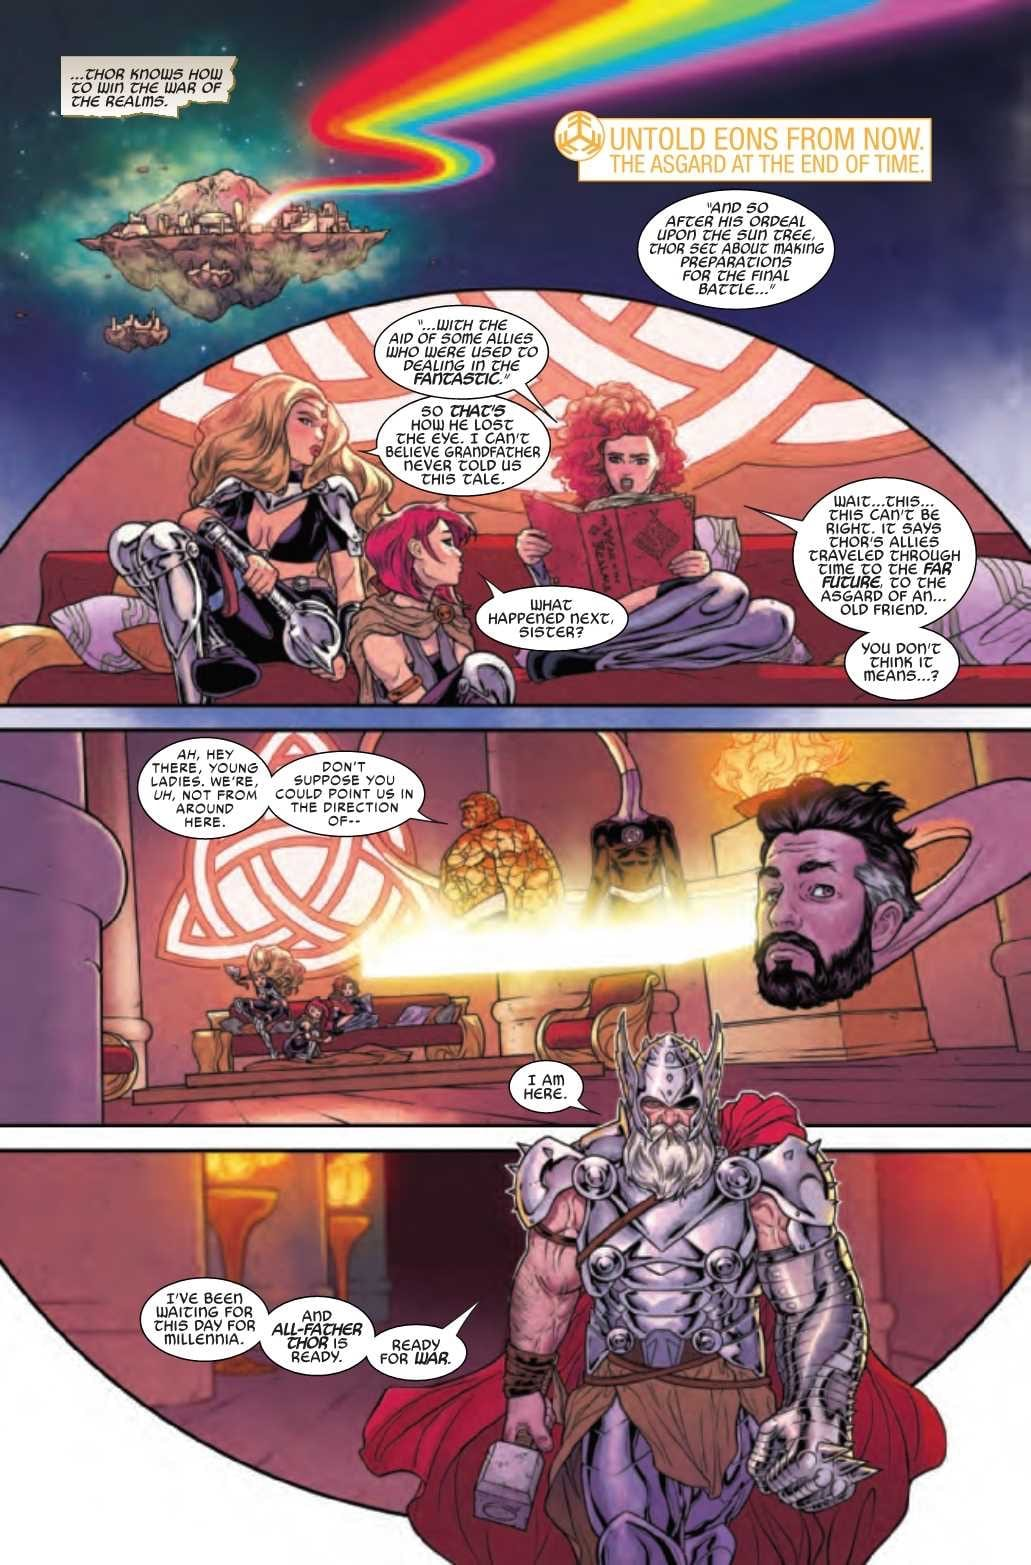 WAR OF THE REALMS Wraps Up Flawlessly 1